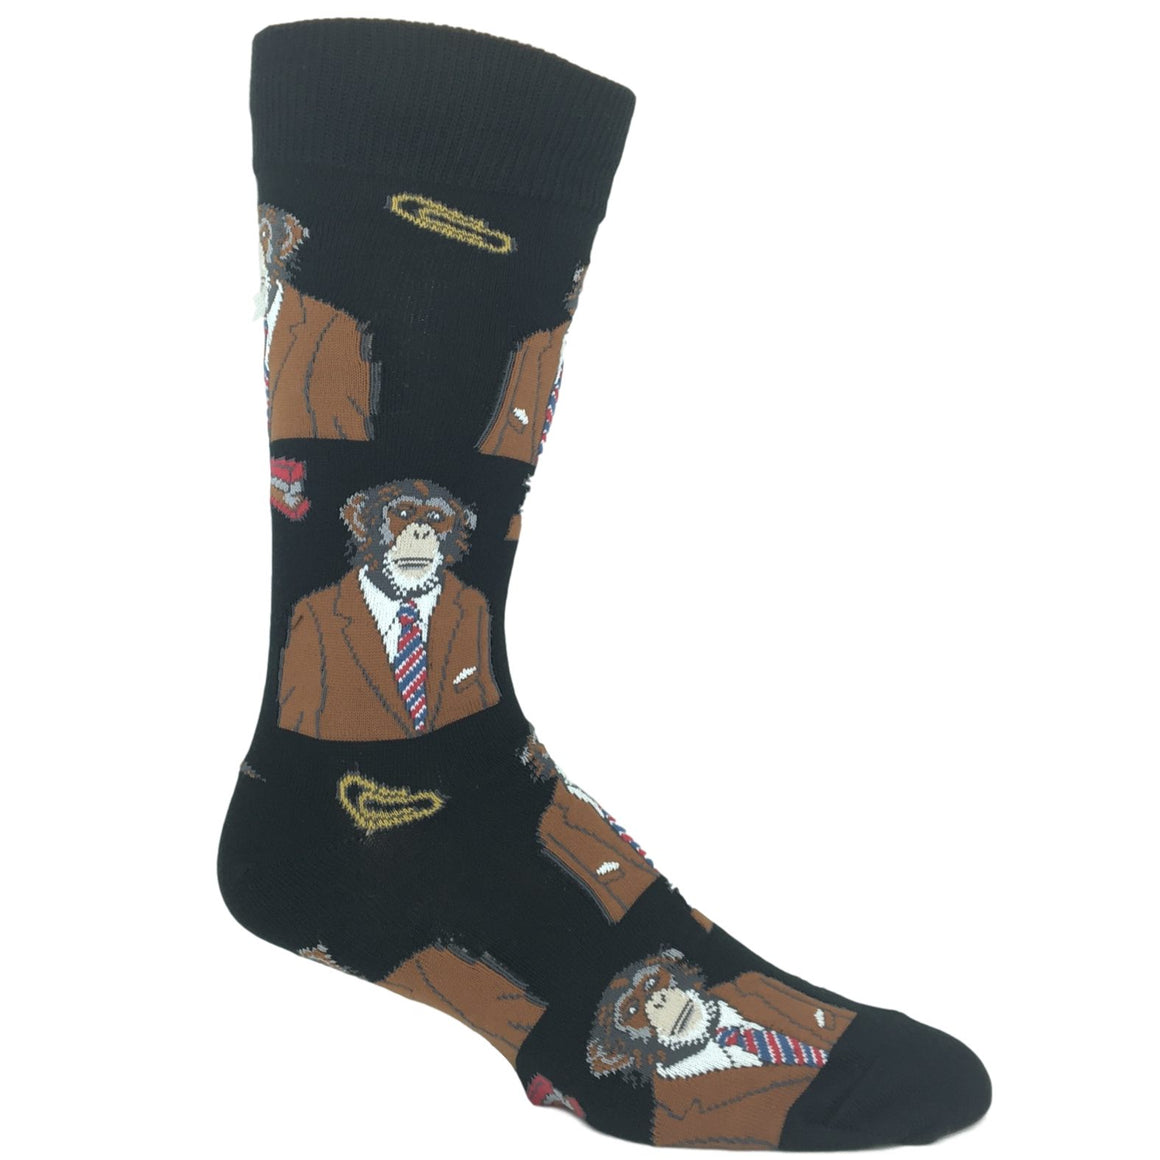 Socks - Monkey Biz Socks - Black